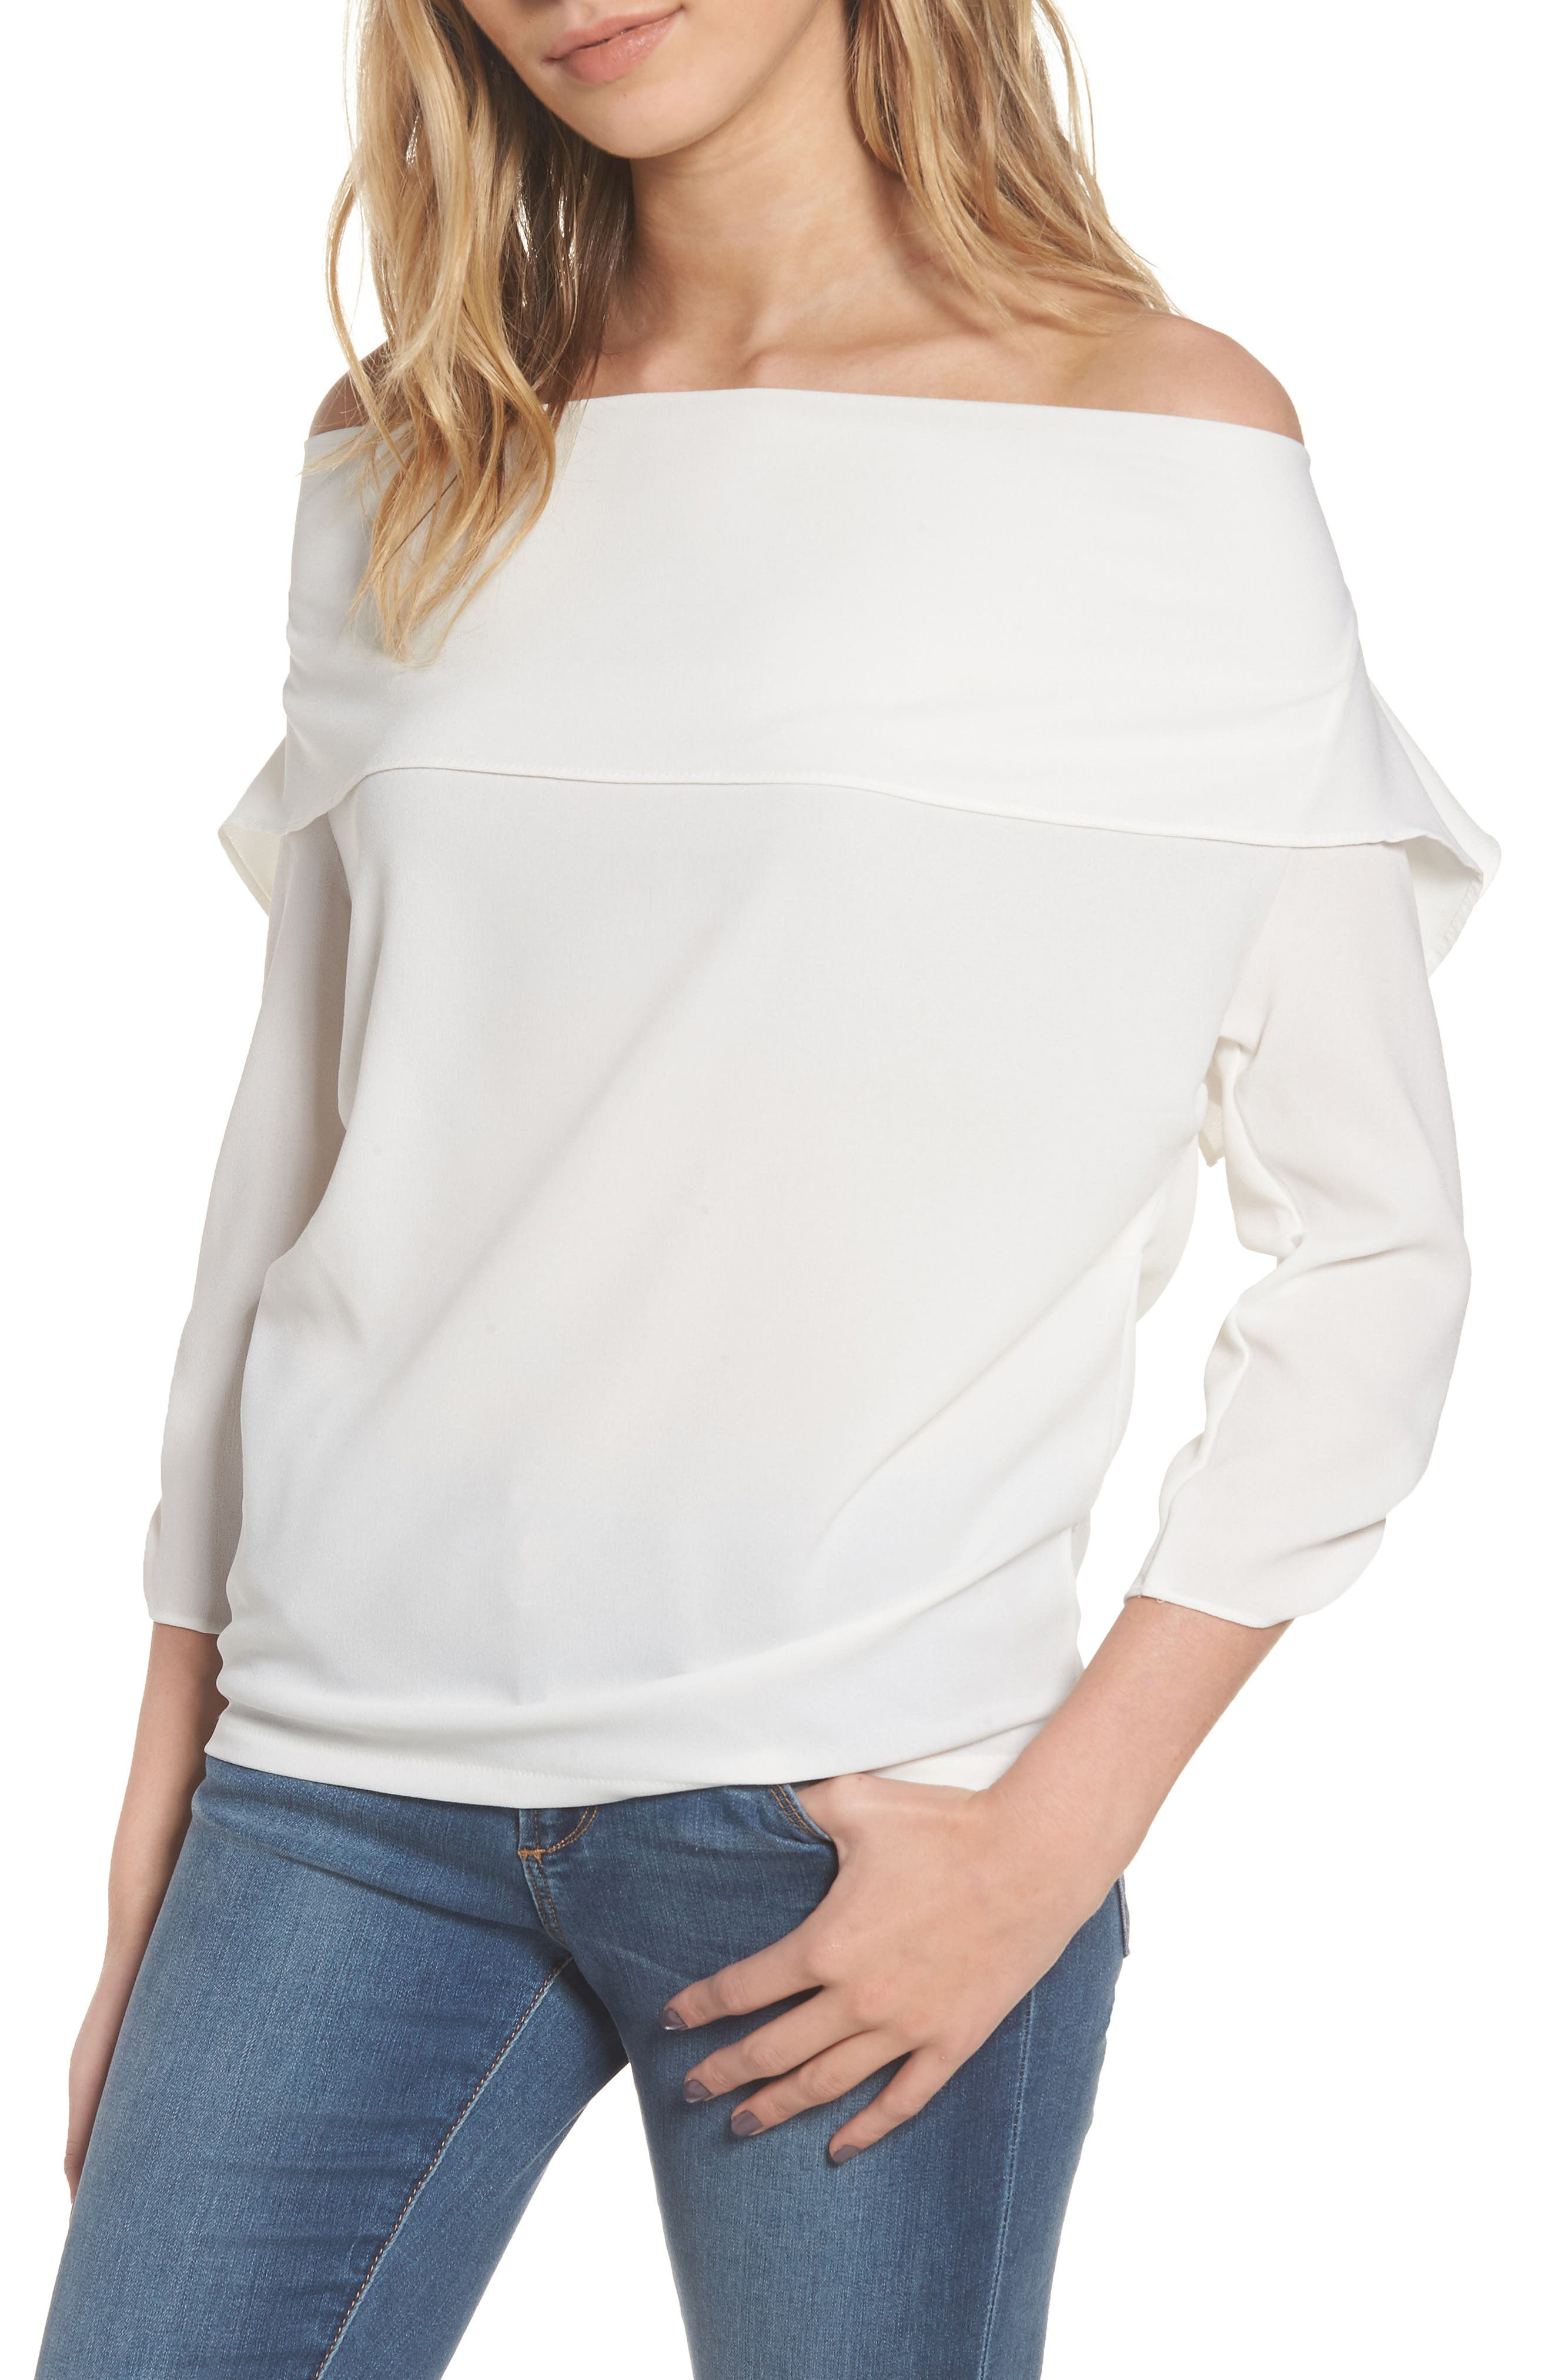 Alternate Image 1 Selected - StyleKeepers The Picture Perfect Off the Shoulder Blouse